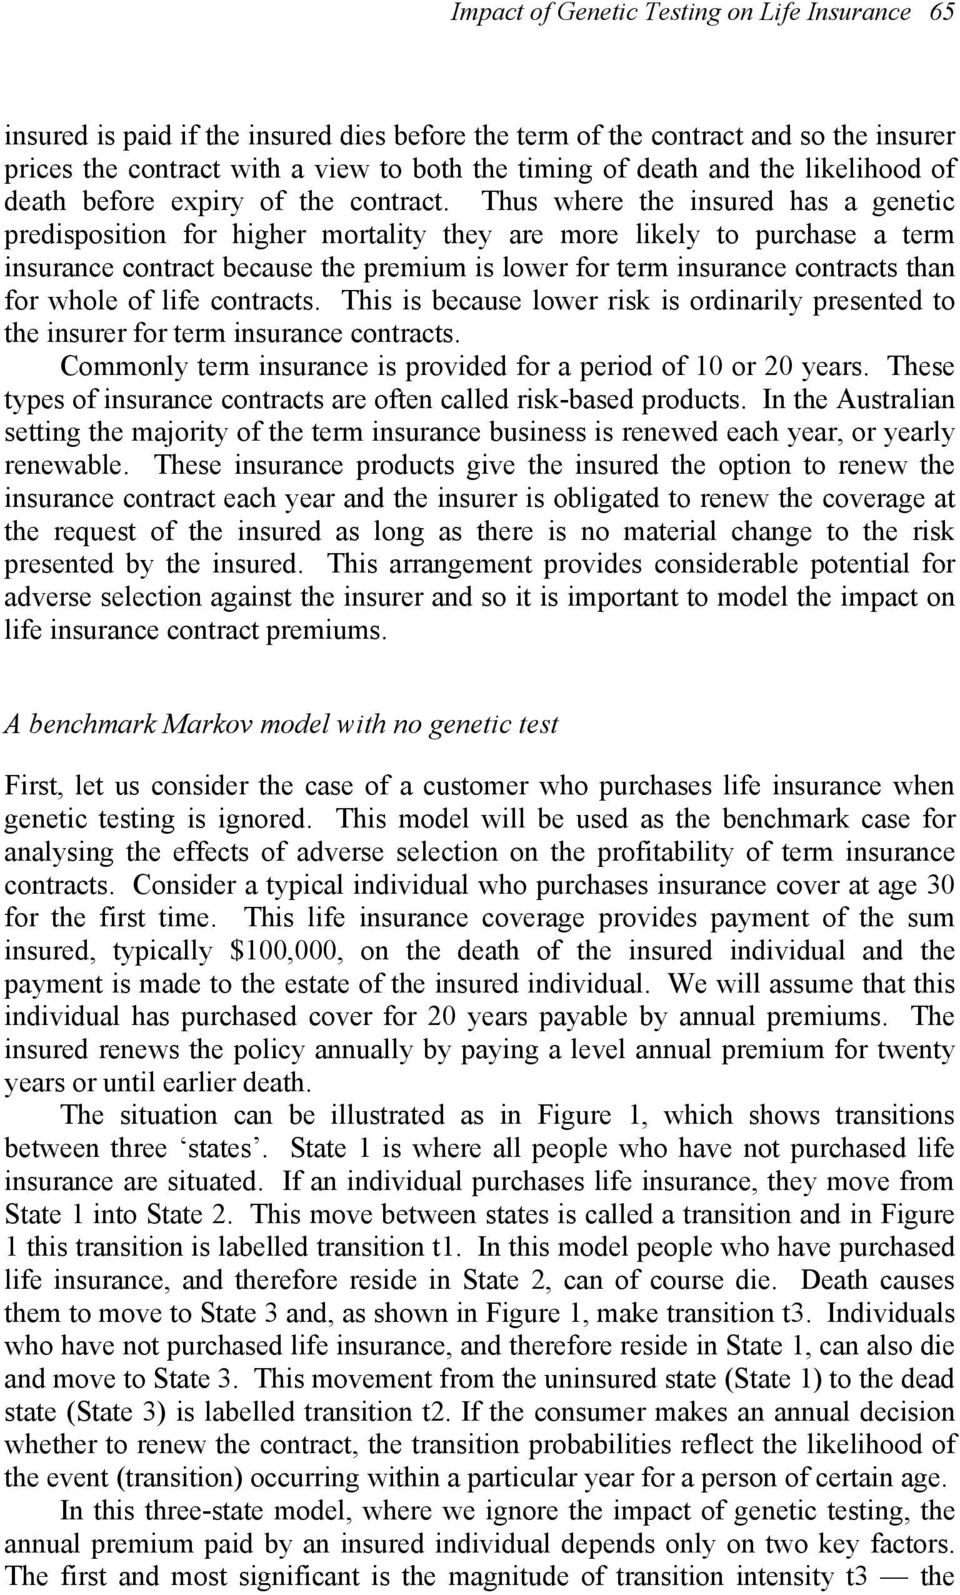 Thus where the insured has a genetic predisposition for higher mortality they are more likely to purchase a term insurance contract because the premium is lower for term insurance contracts than for